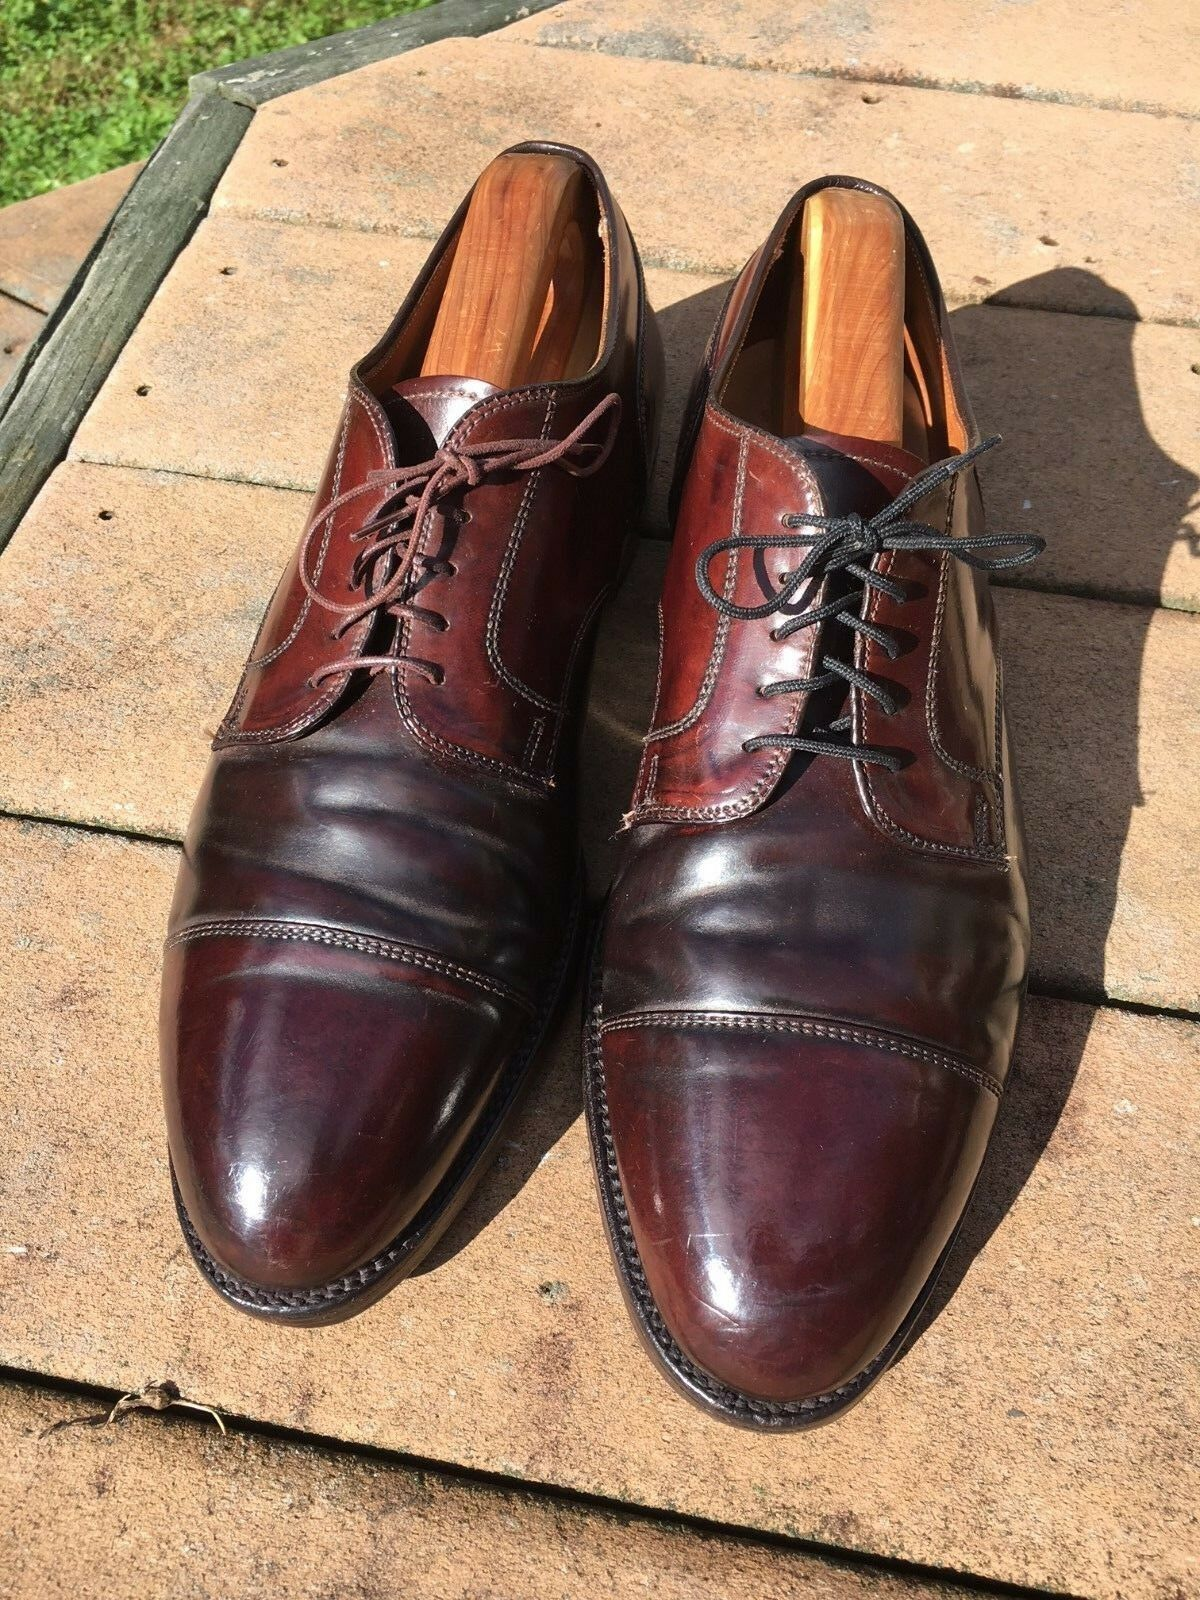 PATINA! Alden/Brooks Shell Cordovan Captoe Blucher Burgundy 11.5E Wide #8 #8 #8 a37abf